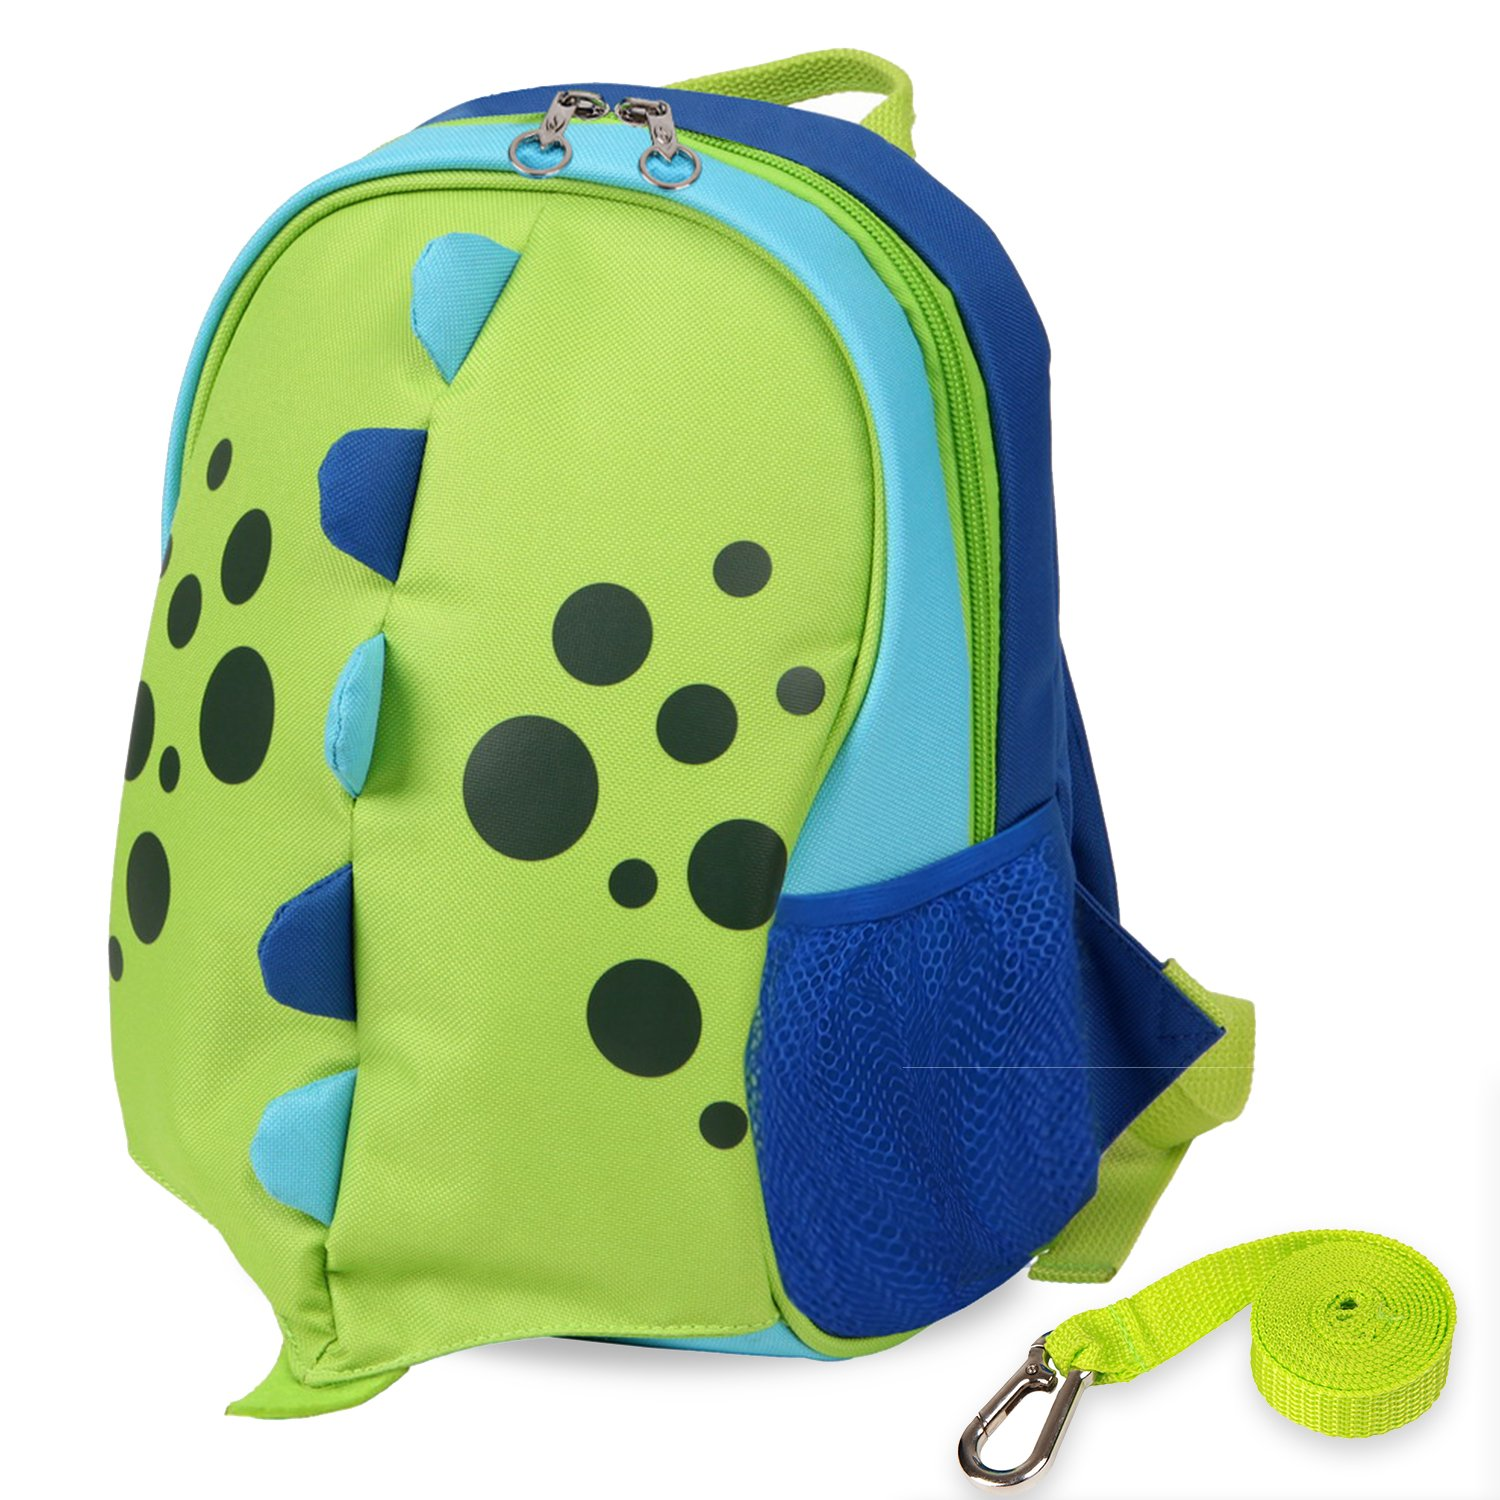 33559c012ce0 yodo Upgraded Kids Insulated Toddler Backpack with Safety Harness Leash and  Name Label - Playful Preschool Kids Lunch Bag, Dinosaur